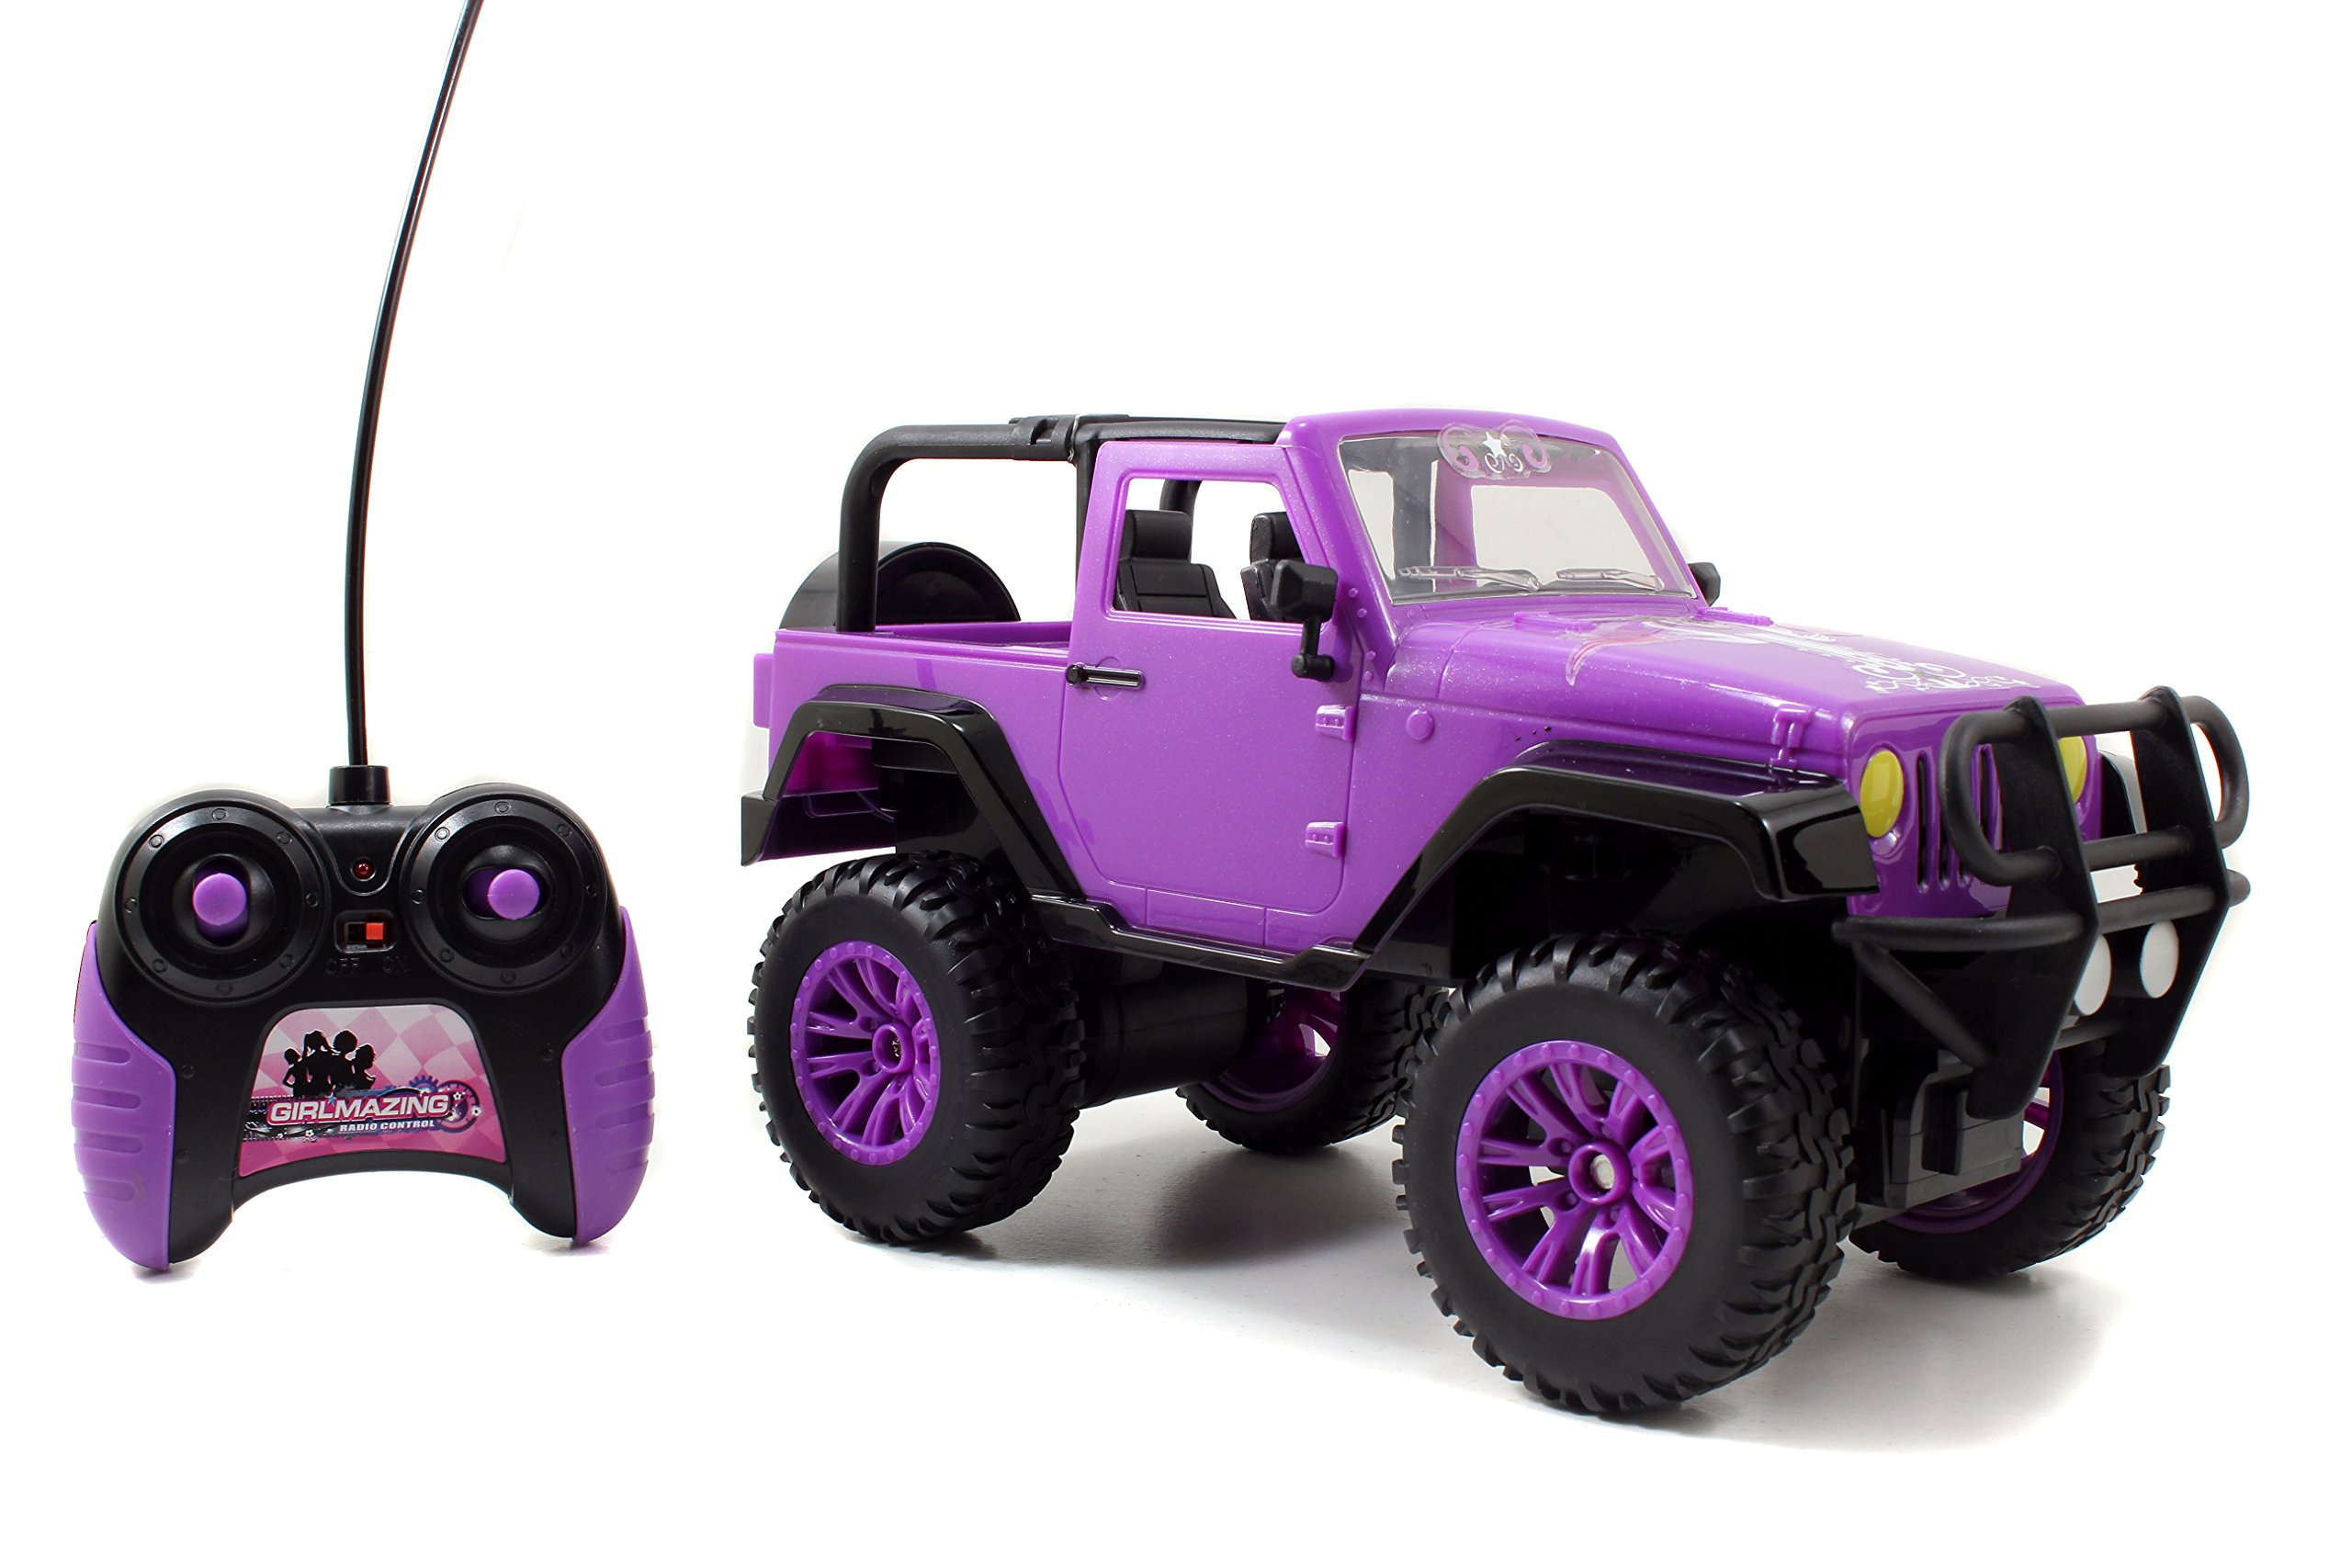 Jada Toys GIRLMAZING Big Foot Jeep R/C Vehicle (1:16 Scale), Purple by Jada Toys (Image #1)